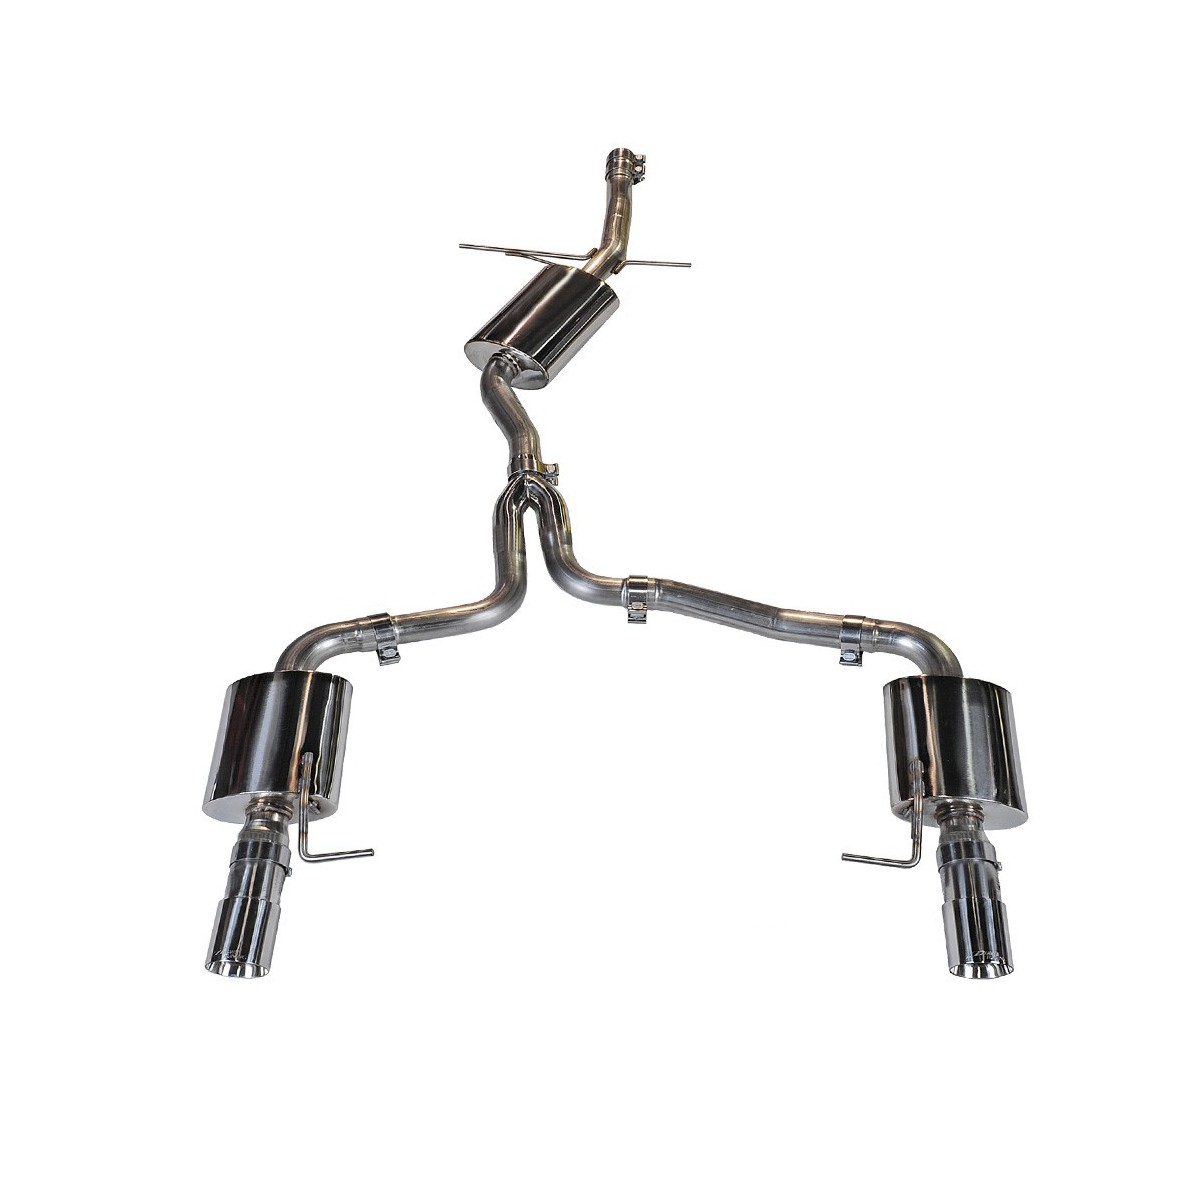 awe tuning b8 5 audi a5 2 0t touring edition cat back exhaust system